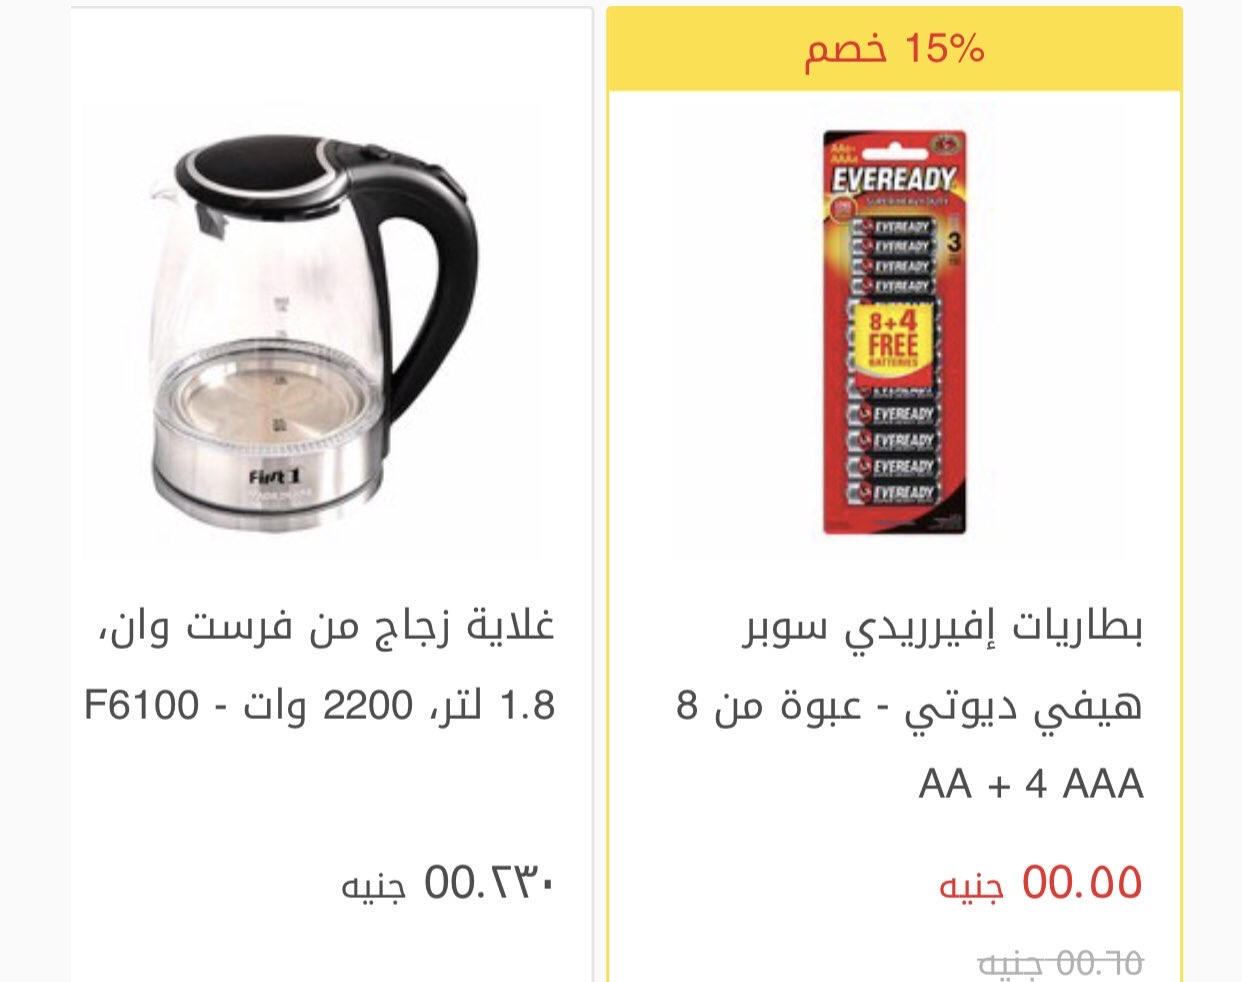 New Carrefour Egypt introduces 50 EGP discount codes on your first order 8